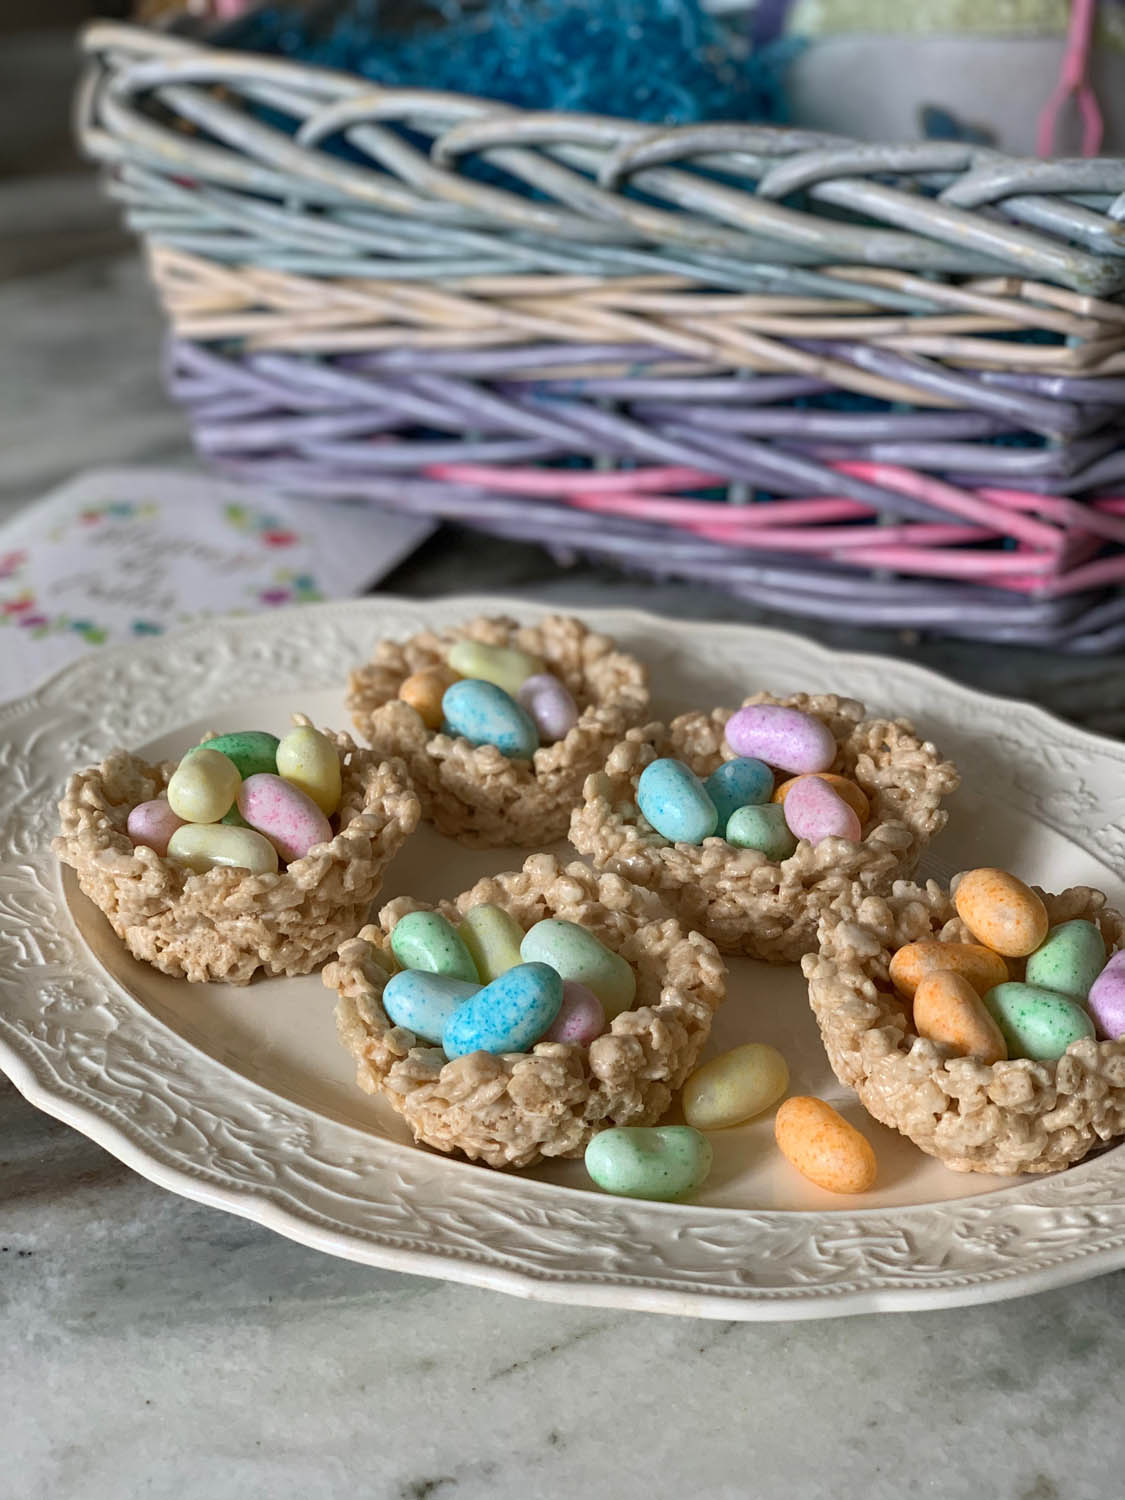 finished Rice Crispy Treats Easter Nests filled with jelly beans and displayed on a white platter next to a rainbow Easter basket